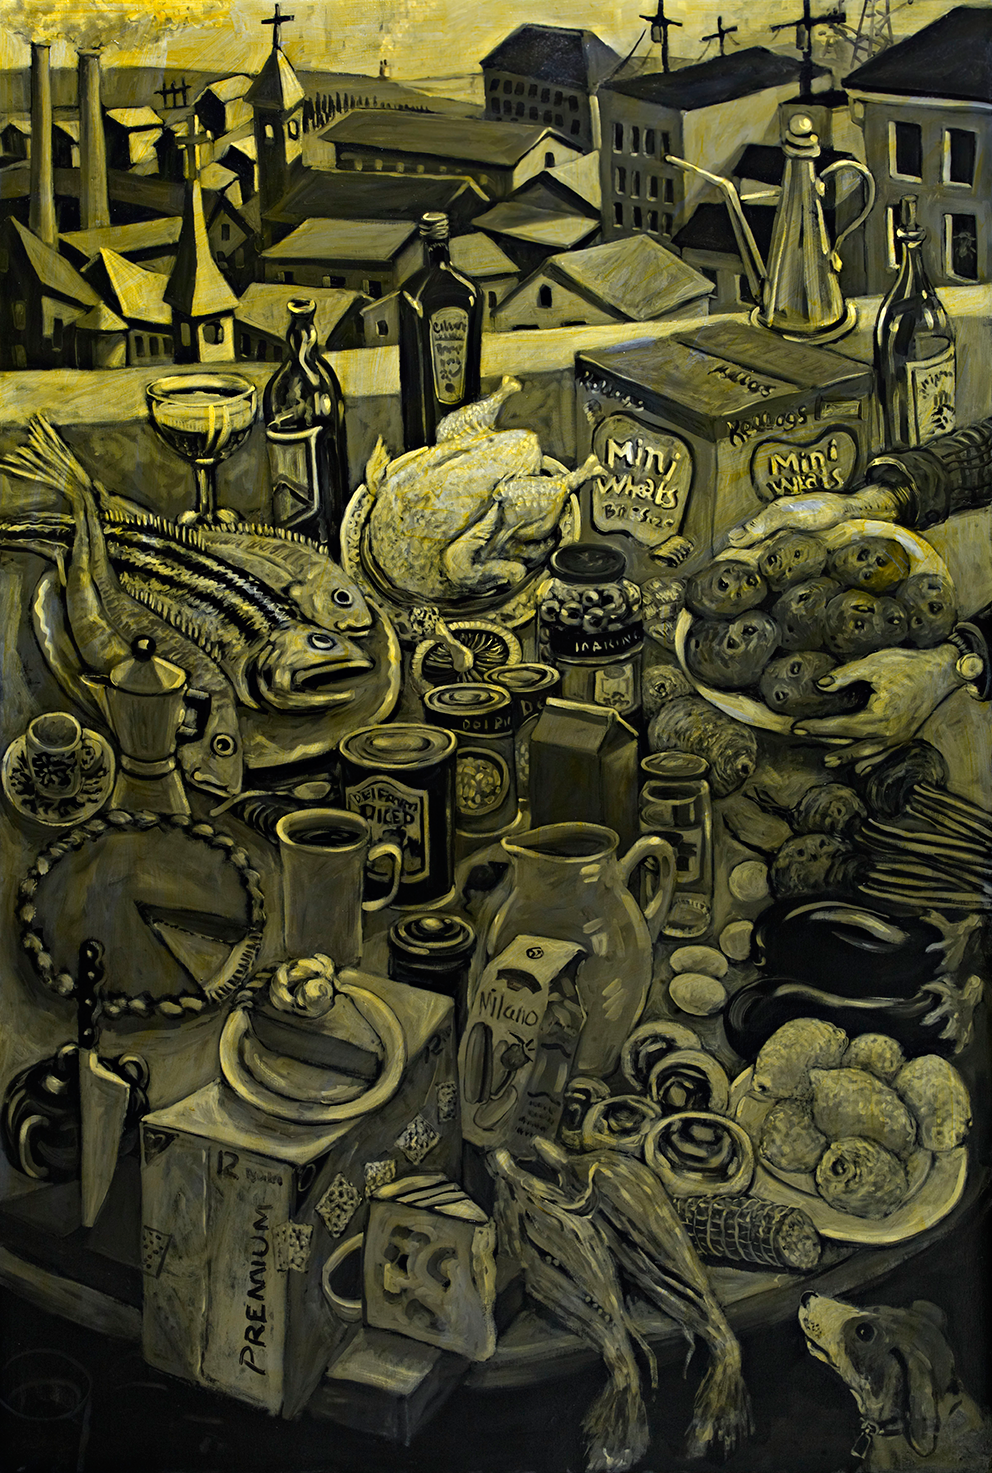 Still Life with Fish   oil on canvas 4 x 6 ft